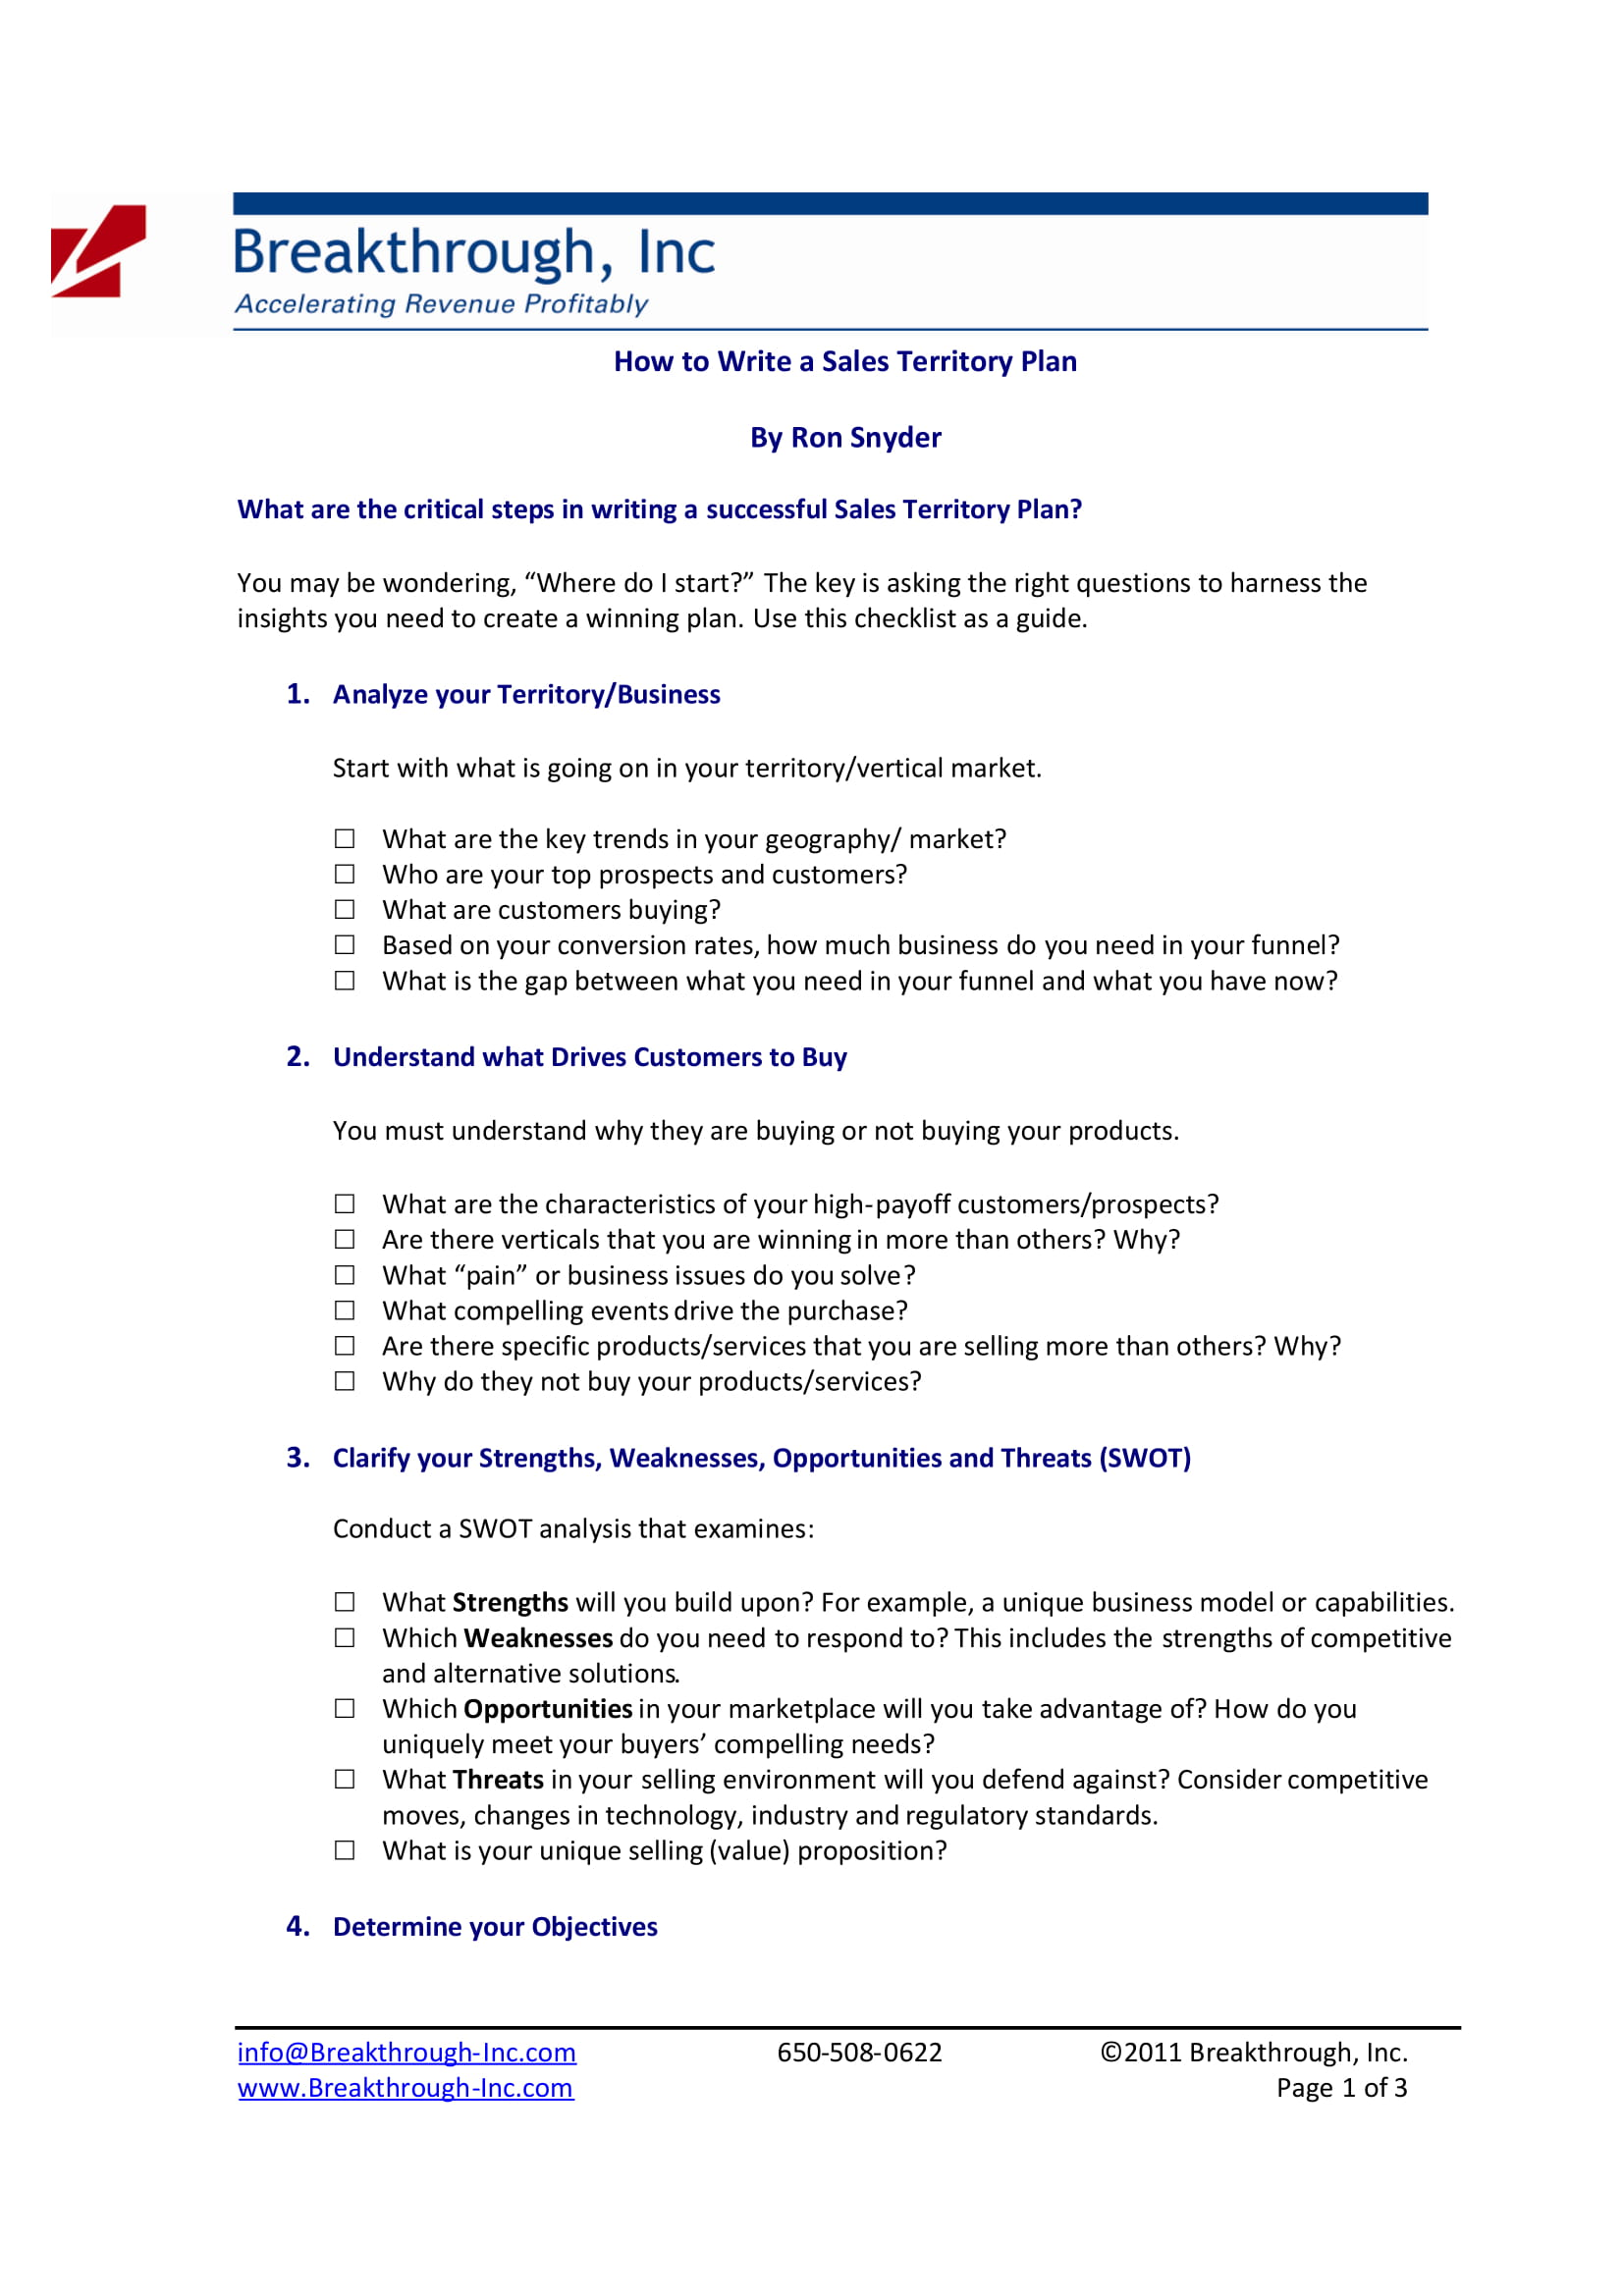 Sales-Territory-Plan-Example-1 Sample Business Letter Template Word on company introduction, for kids, employment termination, scholarship recommendation, donation request, employee termination, professional cover, university petition, pdf collection, formal business, insurance cancellation,